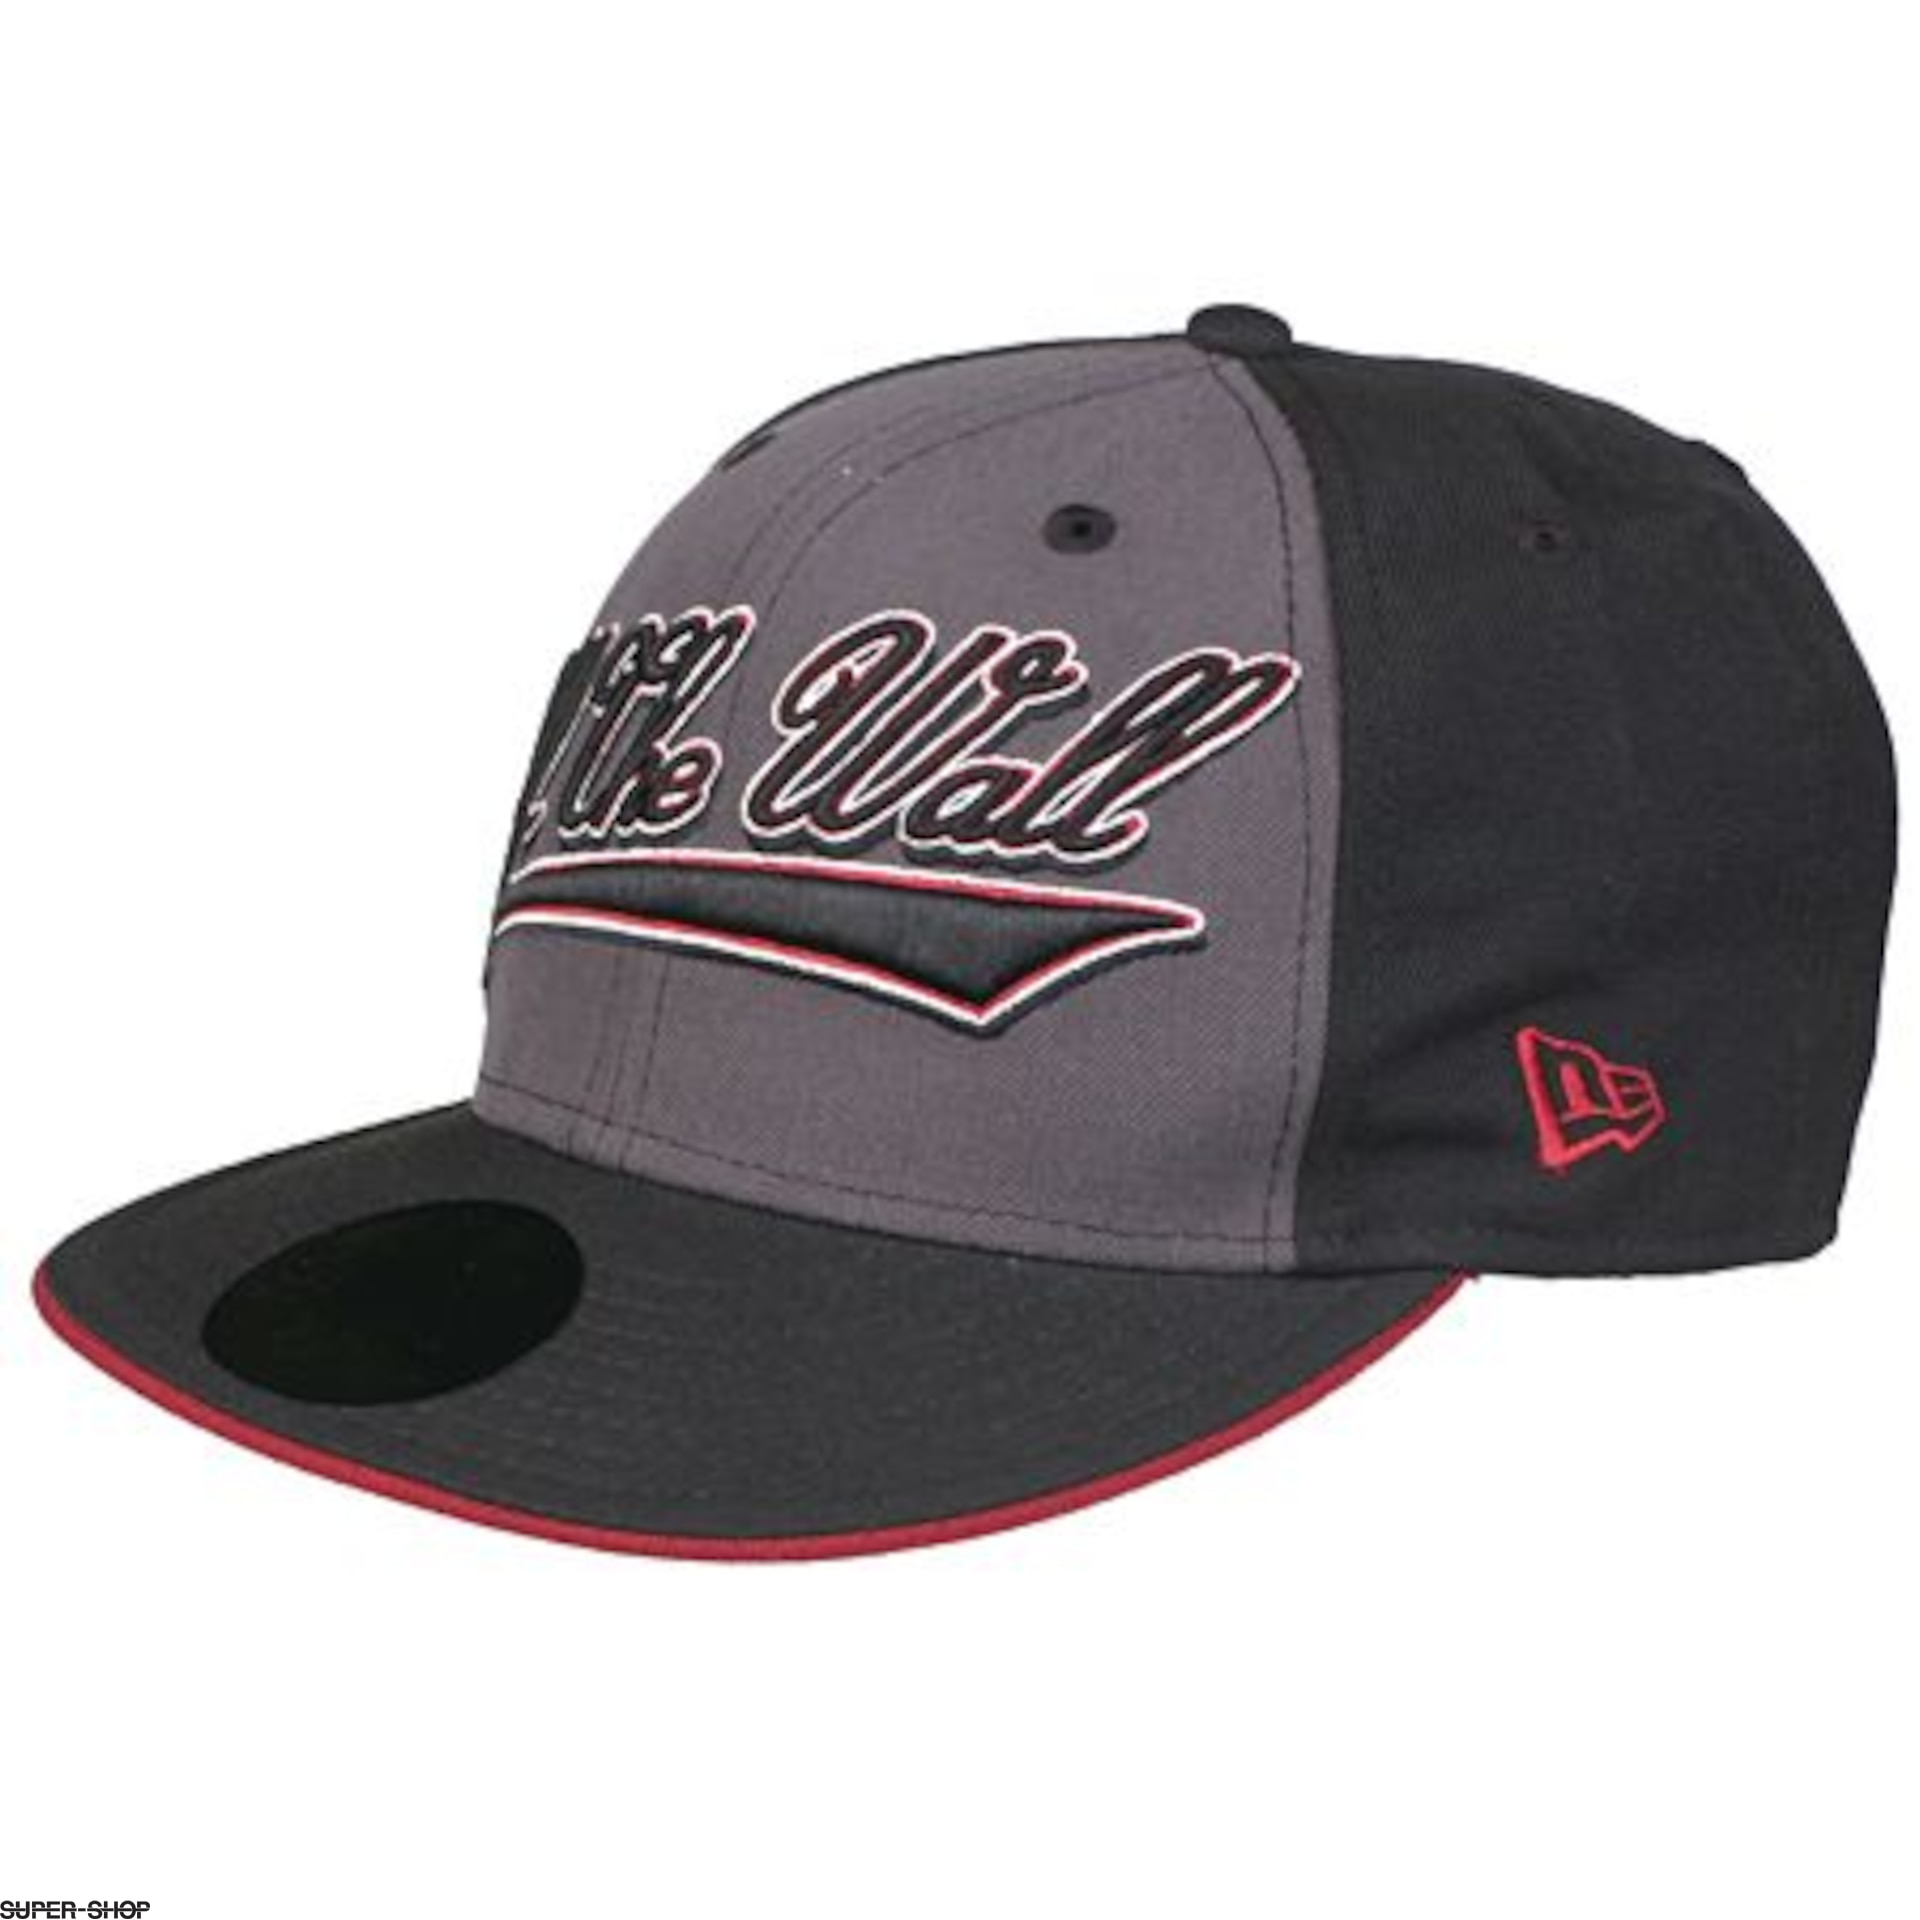 0f894bc2991 450277-w1920-vans-cap-extra-innings-new-era-black.jpg